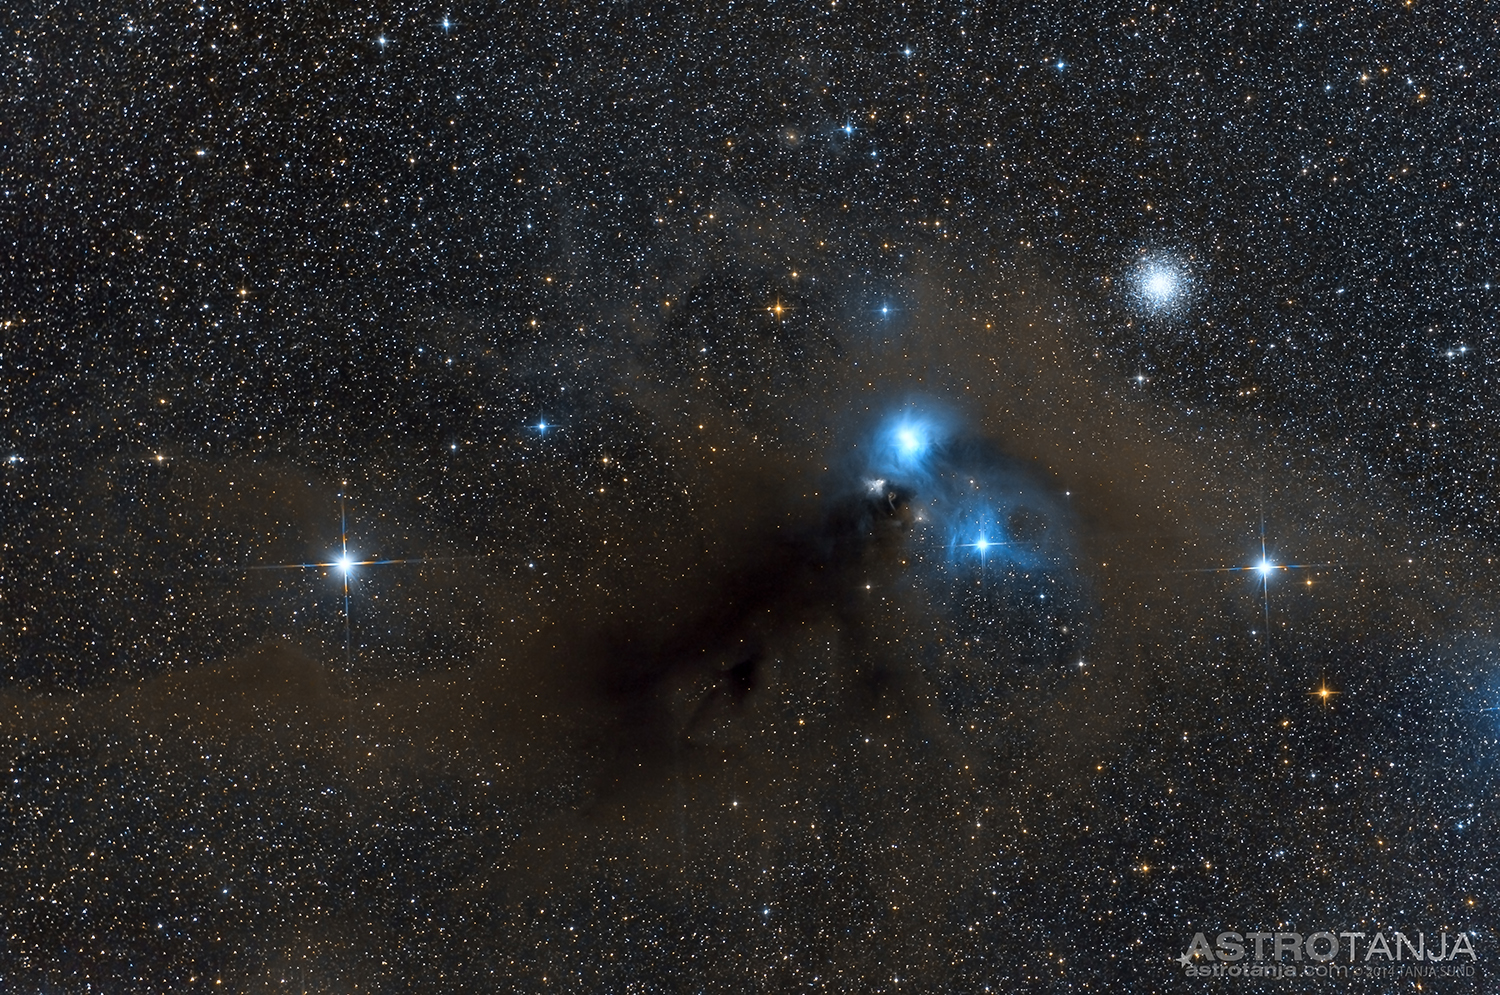 Reflection Nebula In Corona Australis With NGC6723 And Friends